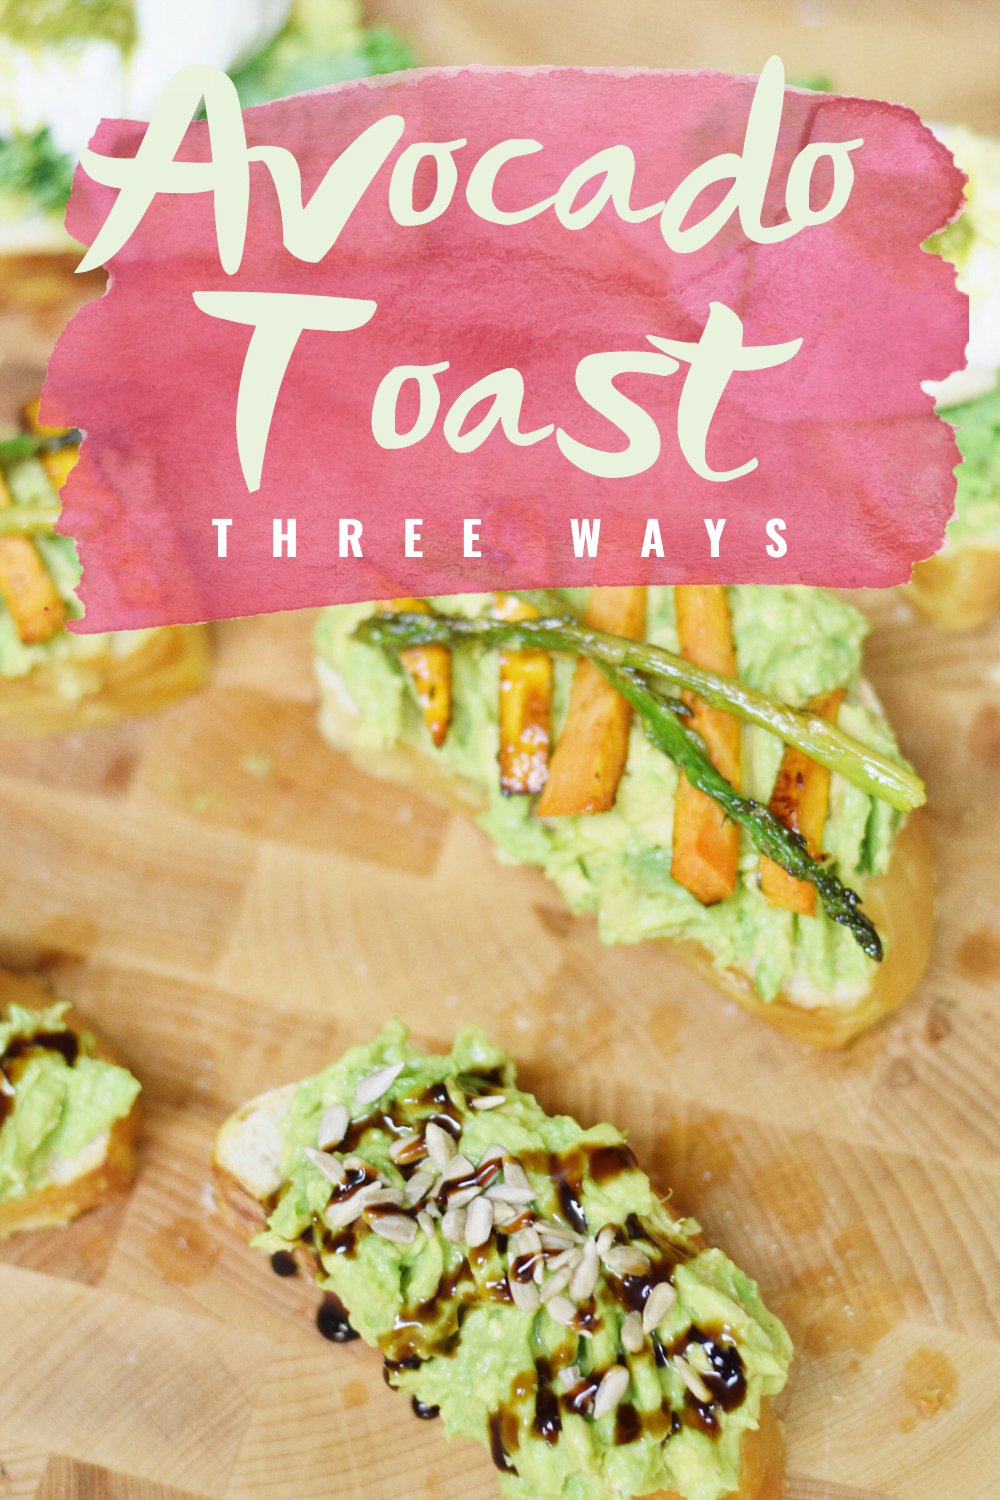 3 Ways To Dress Up Your Avocado Toast - Three new avocado toast recipes to take your favorite avocado + toast snack to next-level meal status! | Breakfast - Brunch - Avocado Toast - Healthier Options